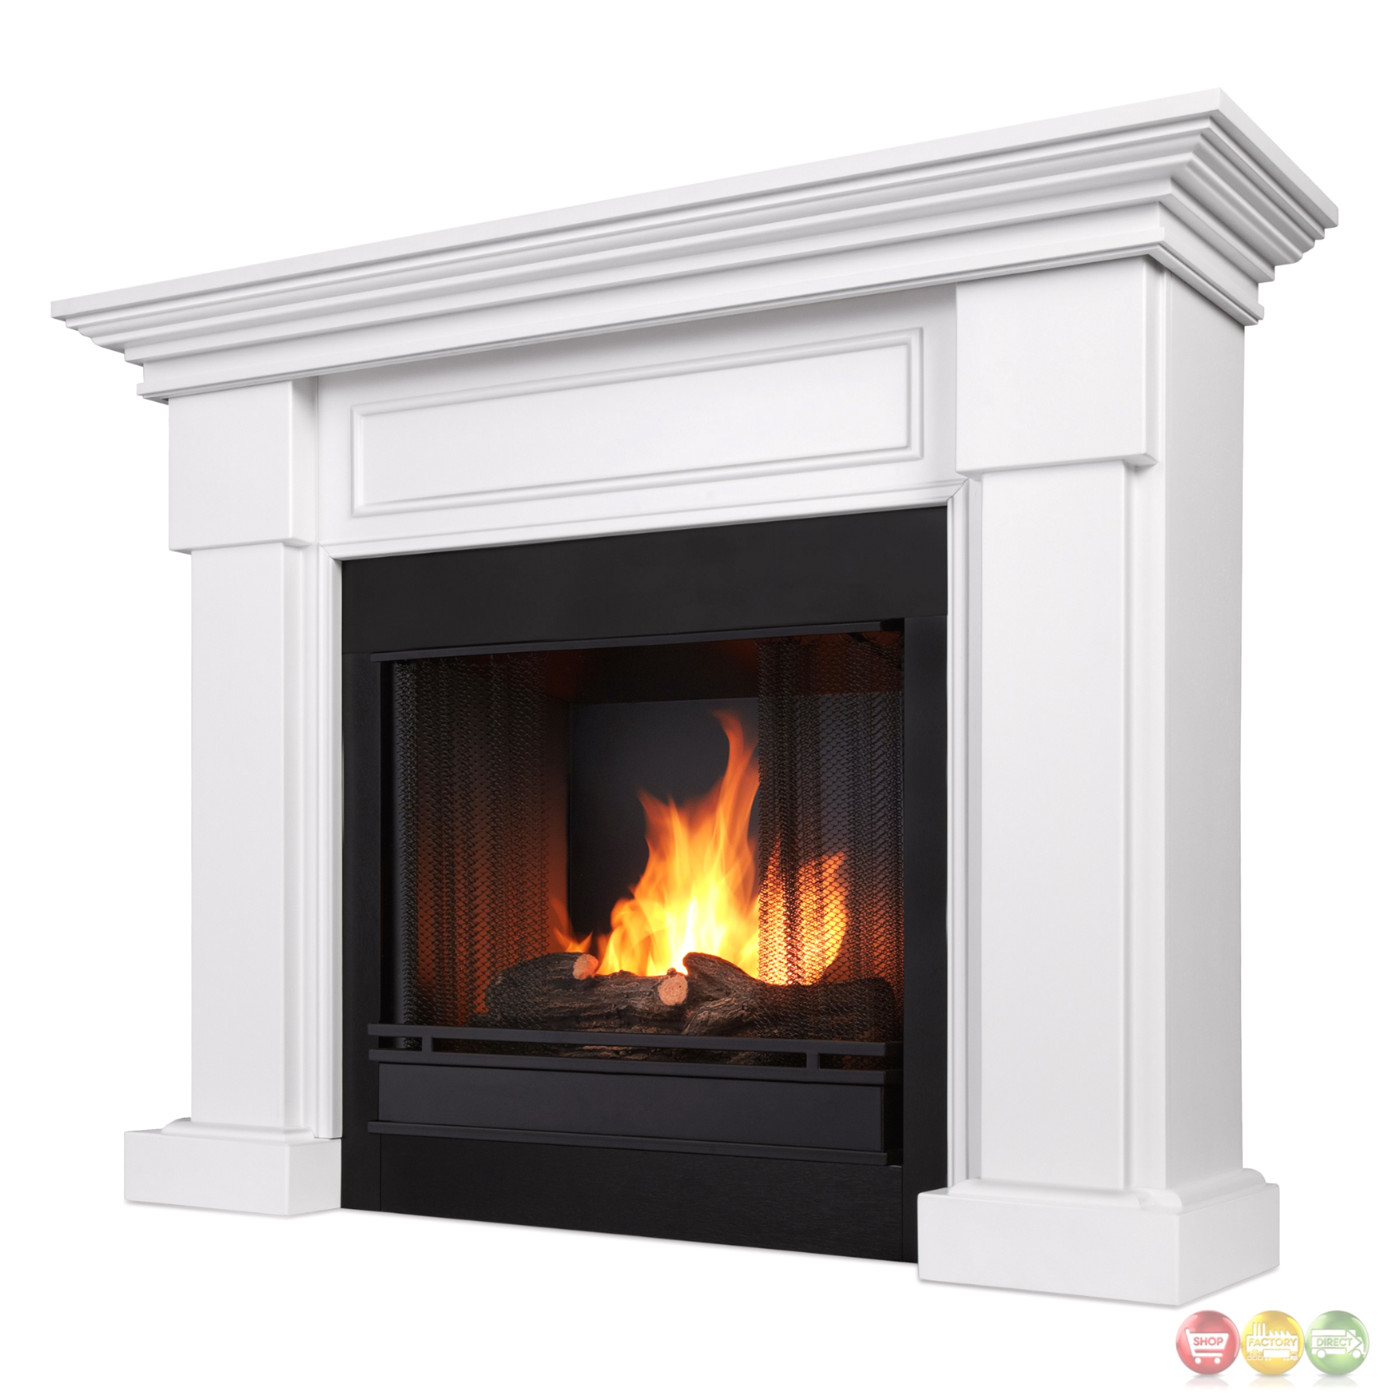 Hillcrest Ventless Gel Fuel Fireplace In White With Logs